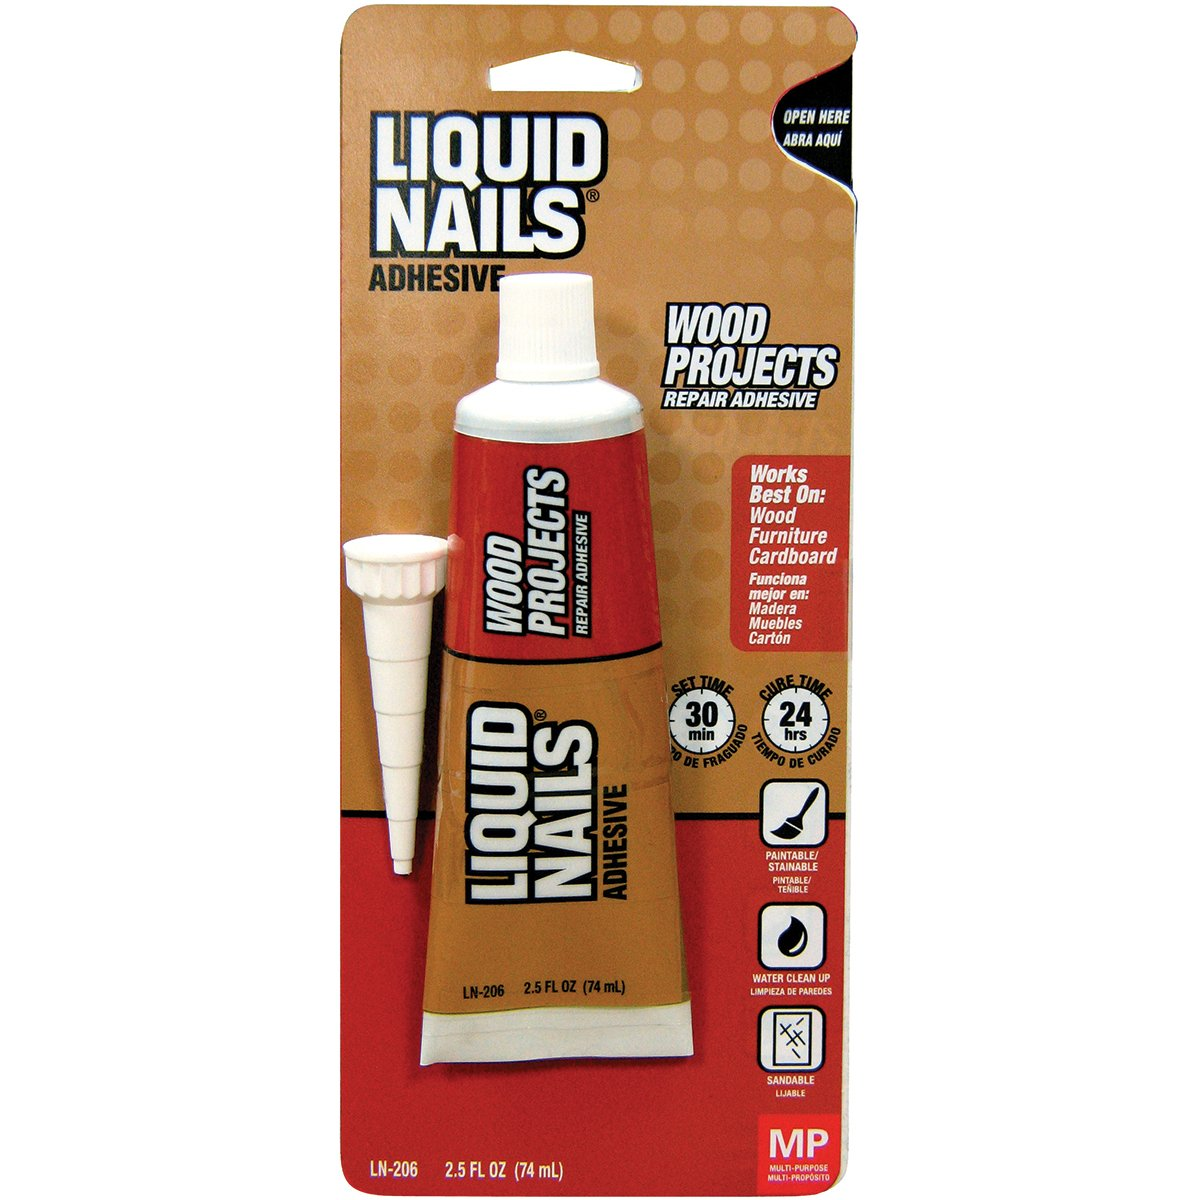 Marvelous Liquid Nails LN 206 2.5 Ounce WD Project Adhesive: Silicone Adhesives:  Amazon.com: Industrial U0026 Scientific